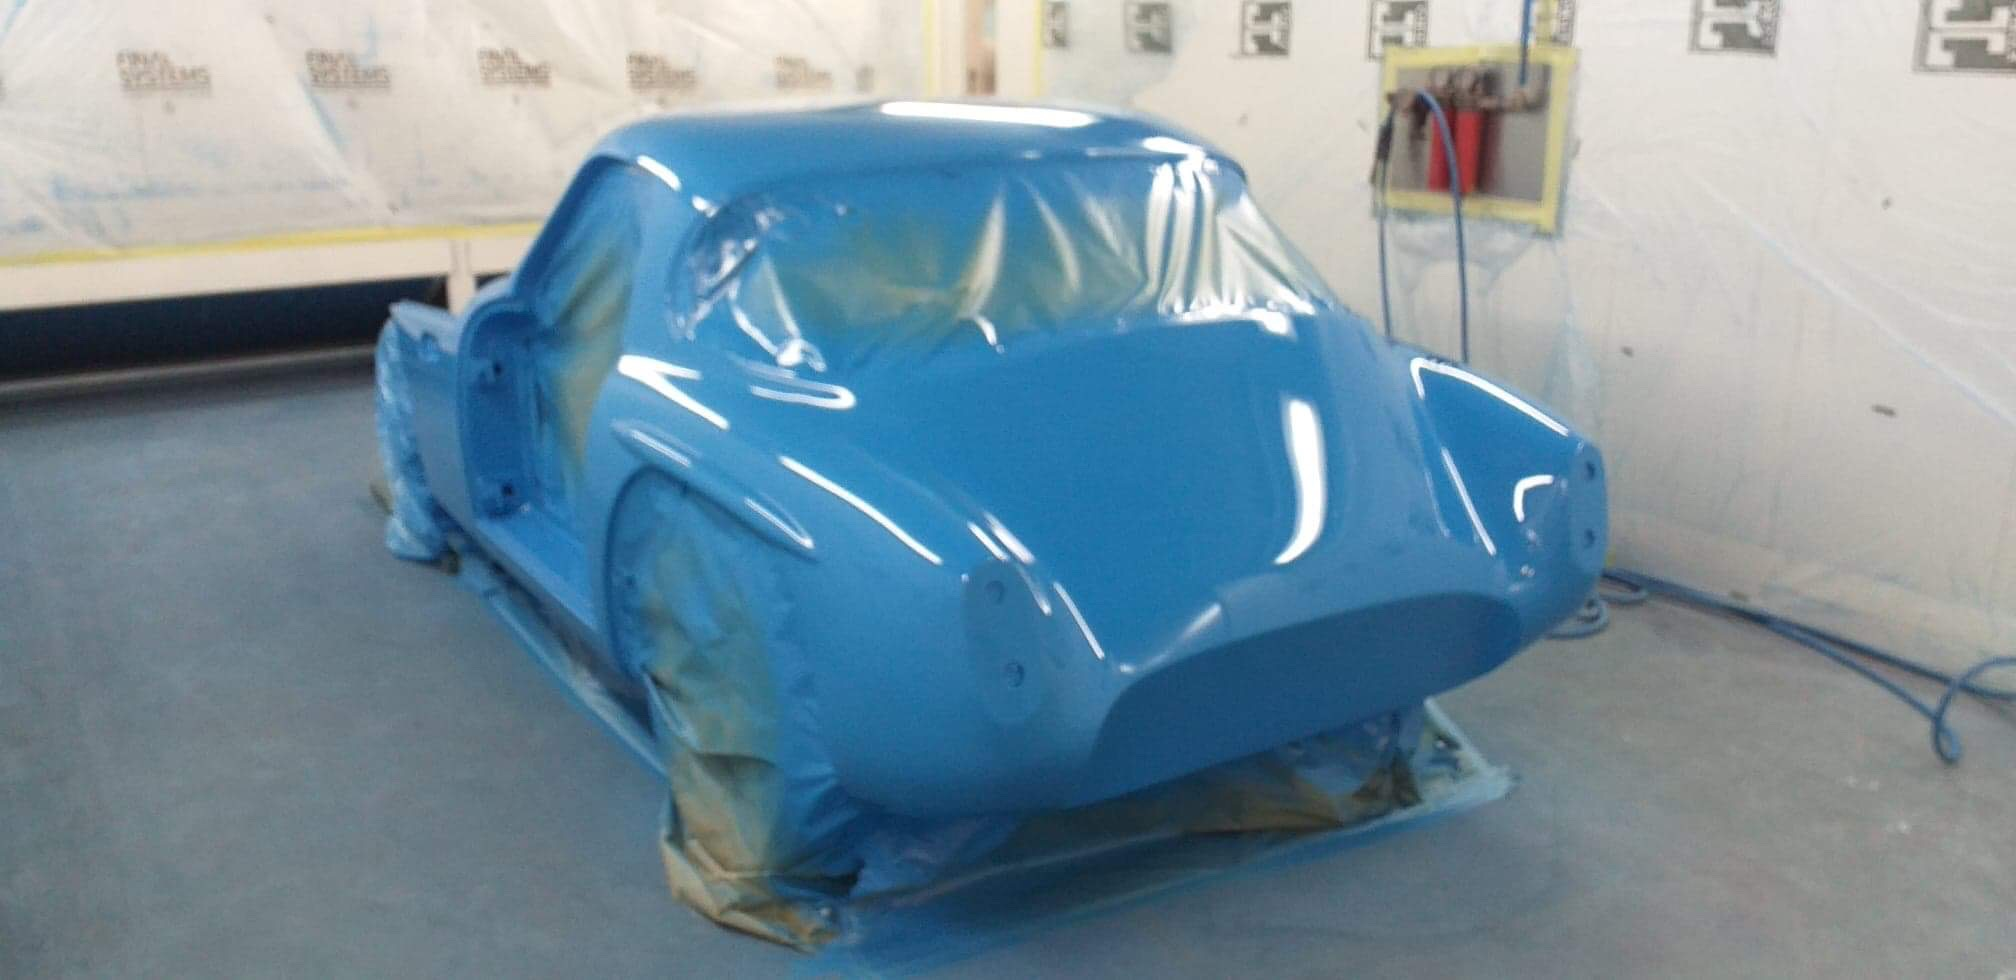 1962 TVR Grantura bodyshell painted